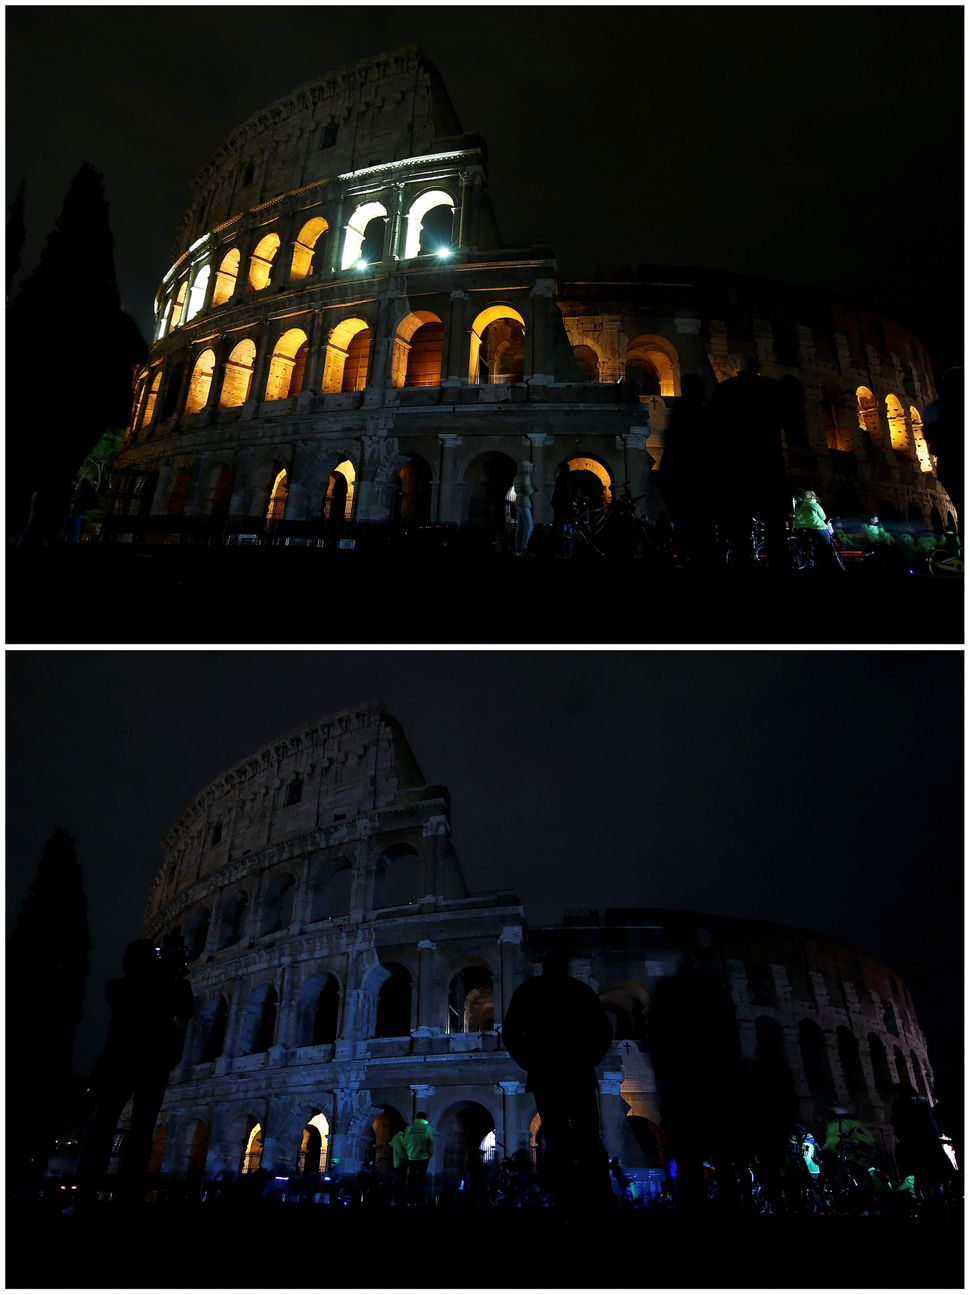 The Colosseum, before and after its lights were switched off.